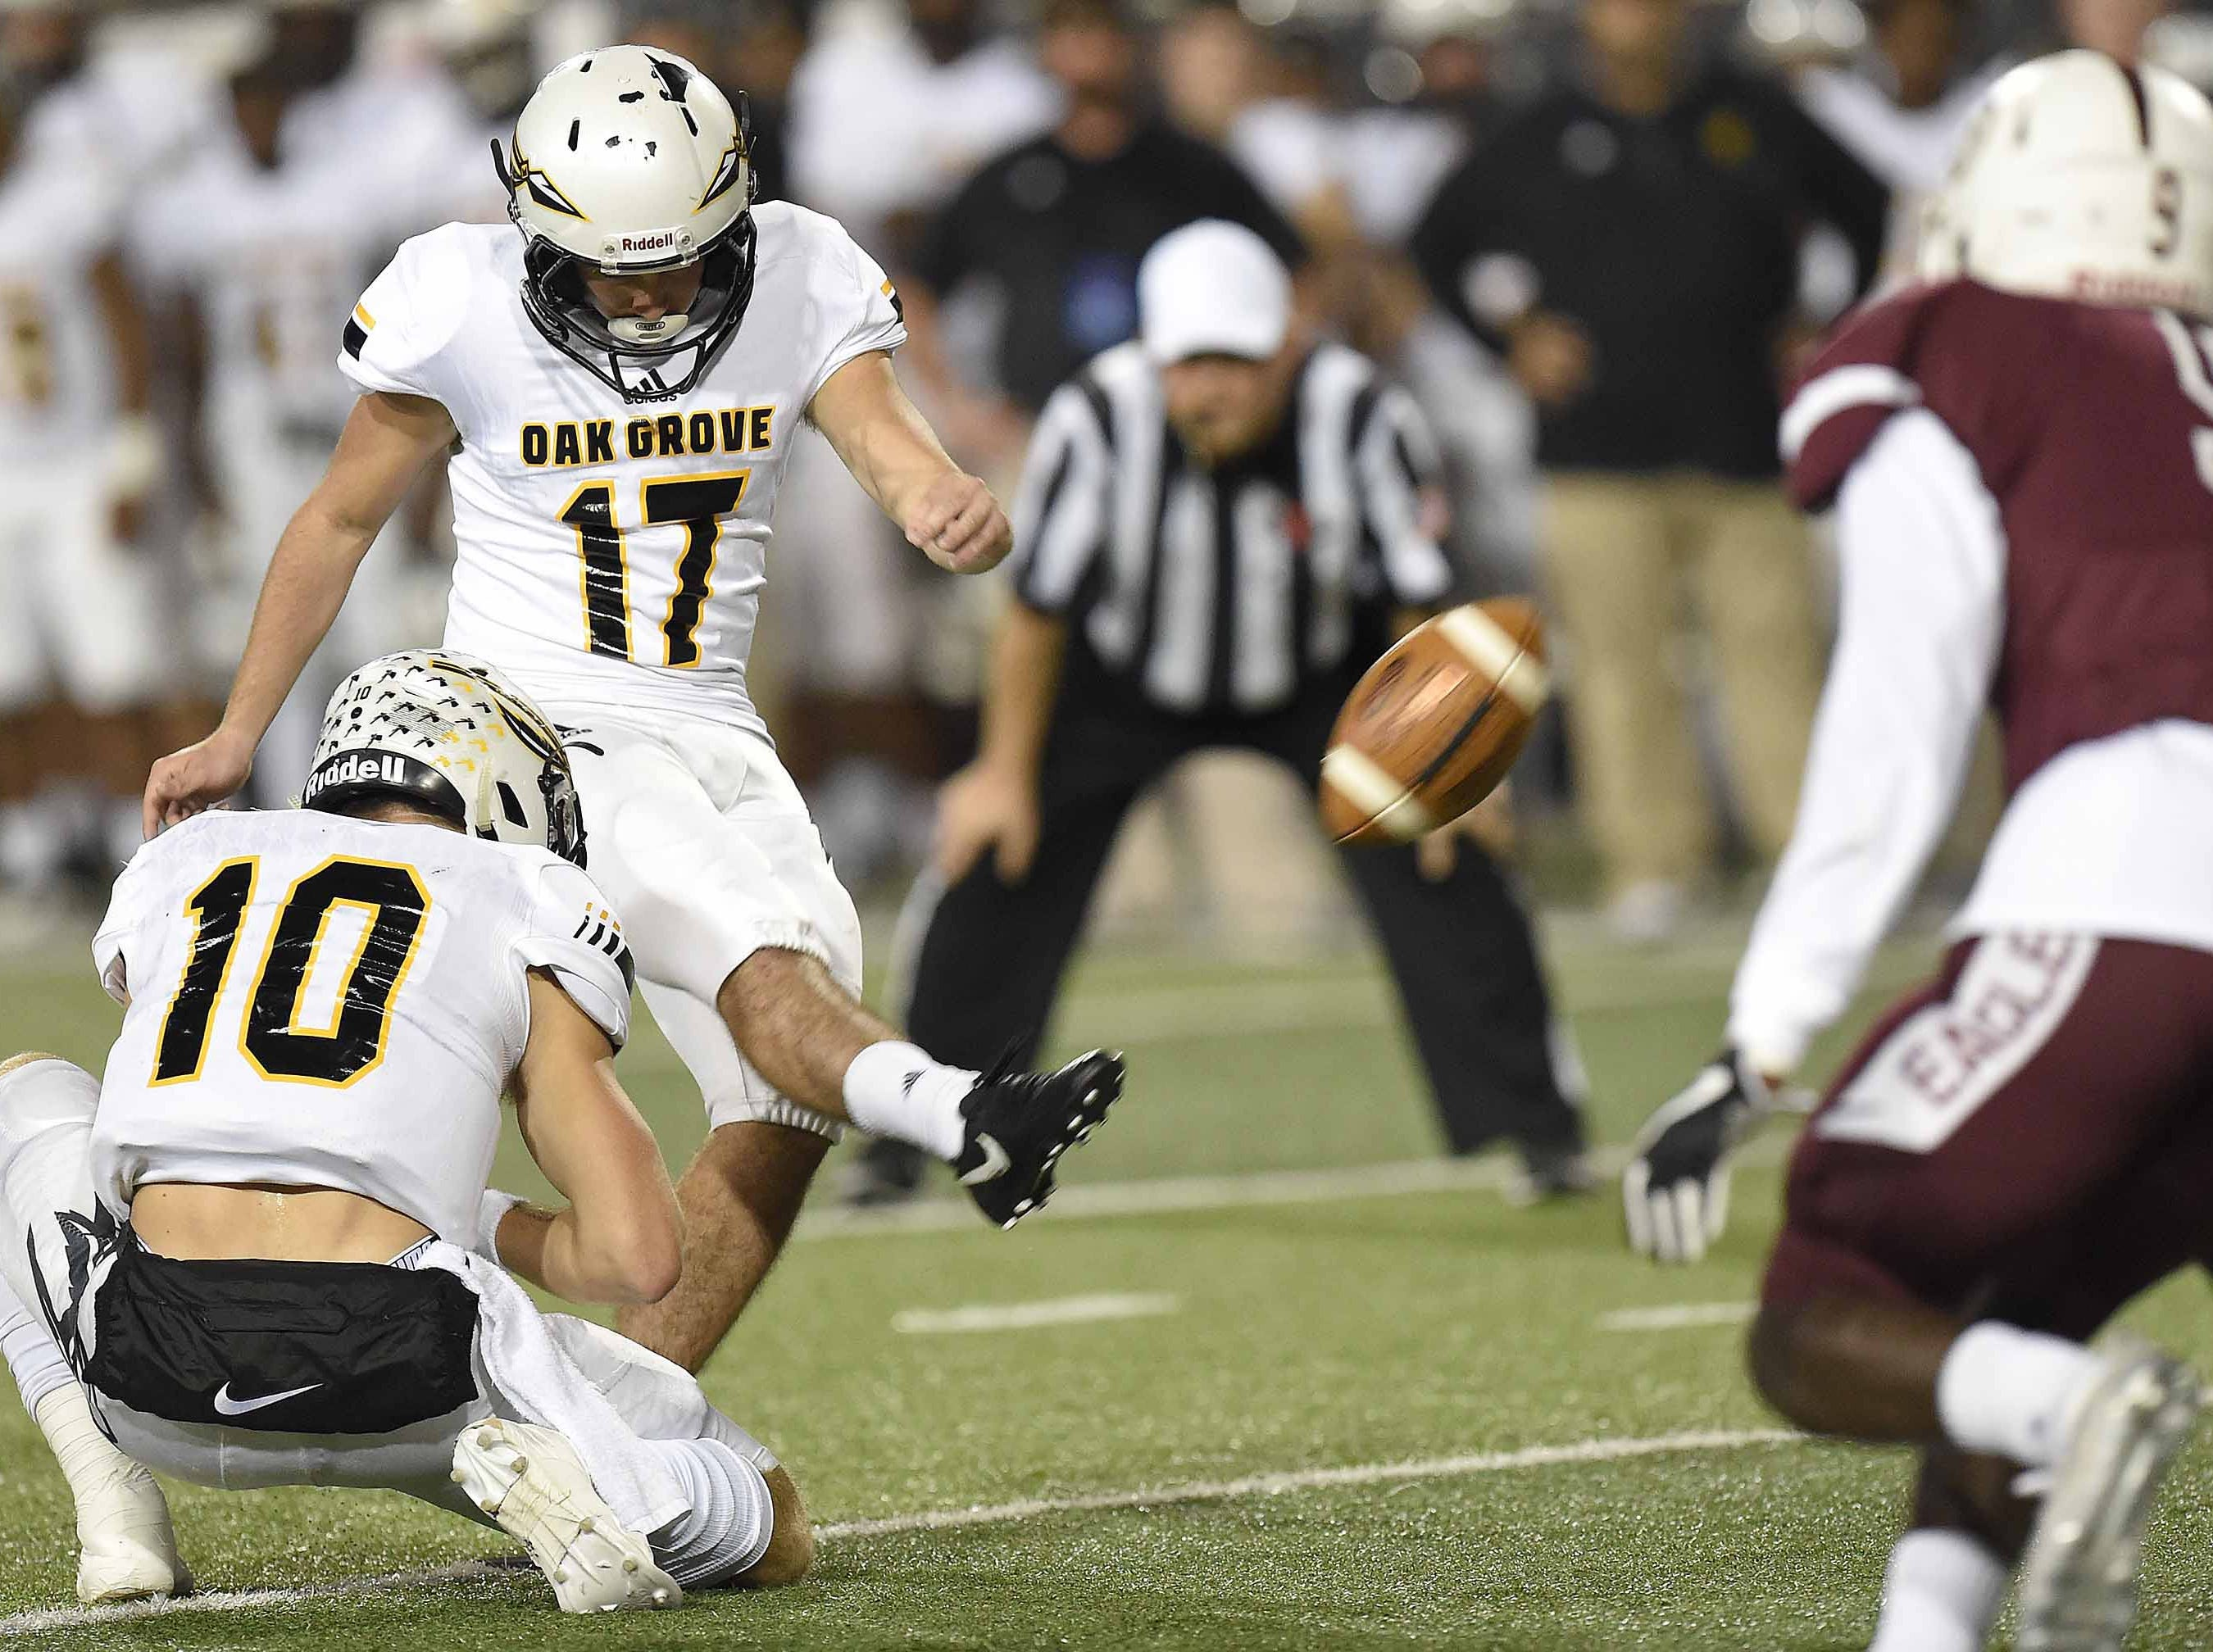 Oak Grove's Blake Ortego (17) kicks an extra point out of the hold by John Rhys Plumlee (10) on Friday, November 20, 2018, in the MHSAA BlueCross BlueShield Gridiron Classic High School Football Championships in M.M. Roberts Stadium on the University of Southern Mississippi campus in Hattiesburg, Miss.